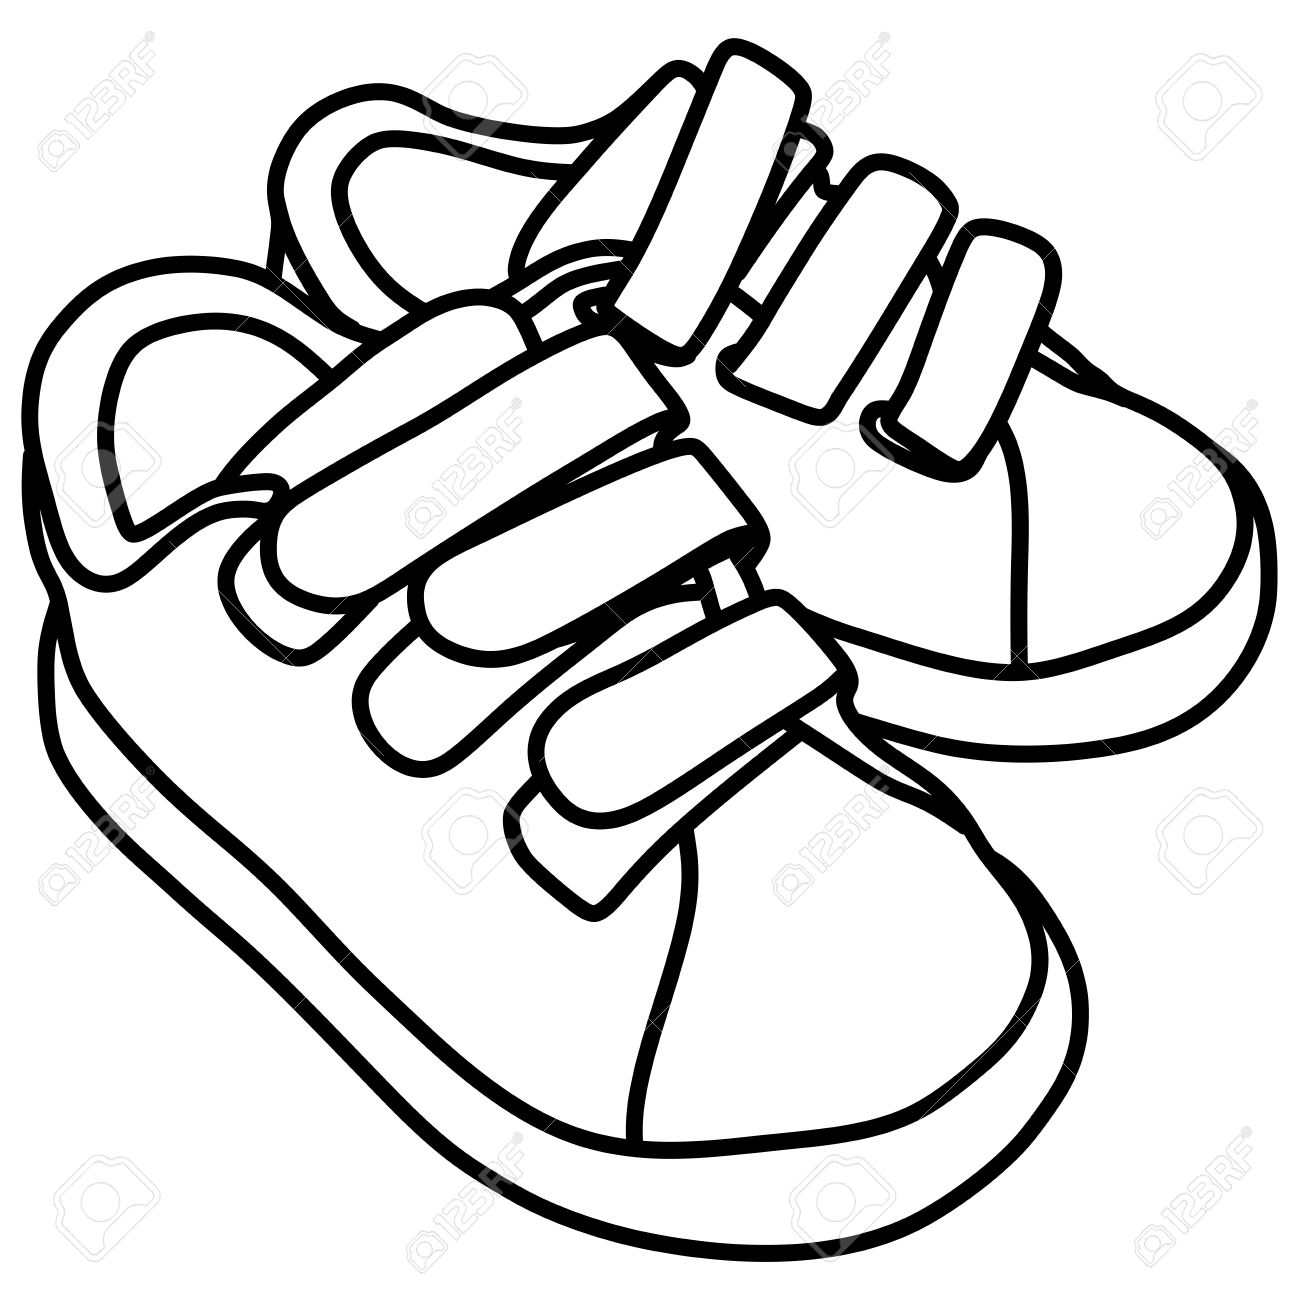 Sapatos clipart black and white » Clipart Station.